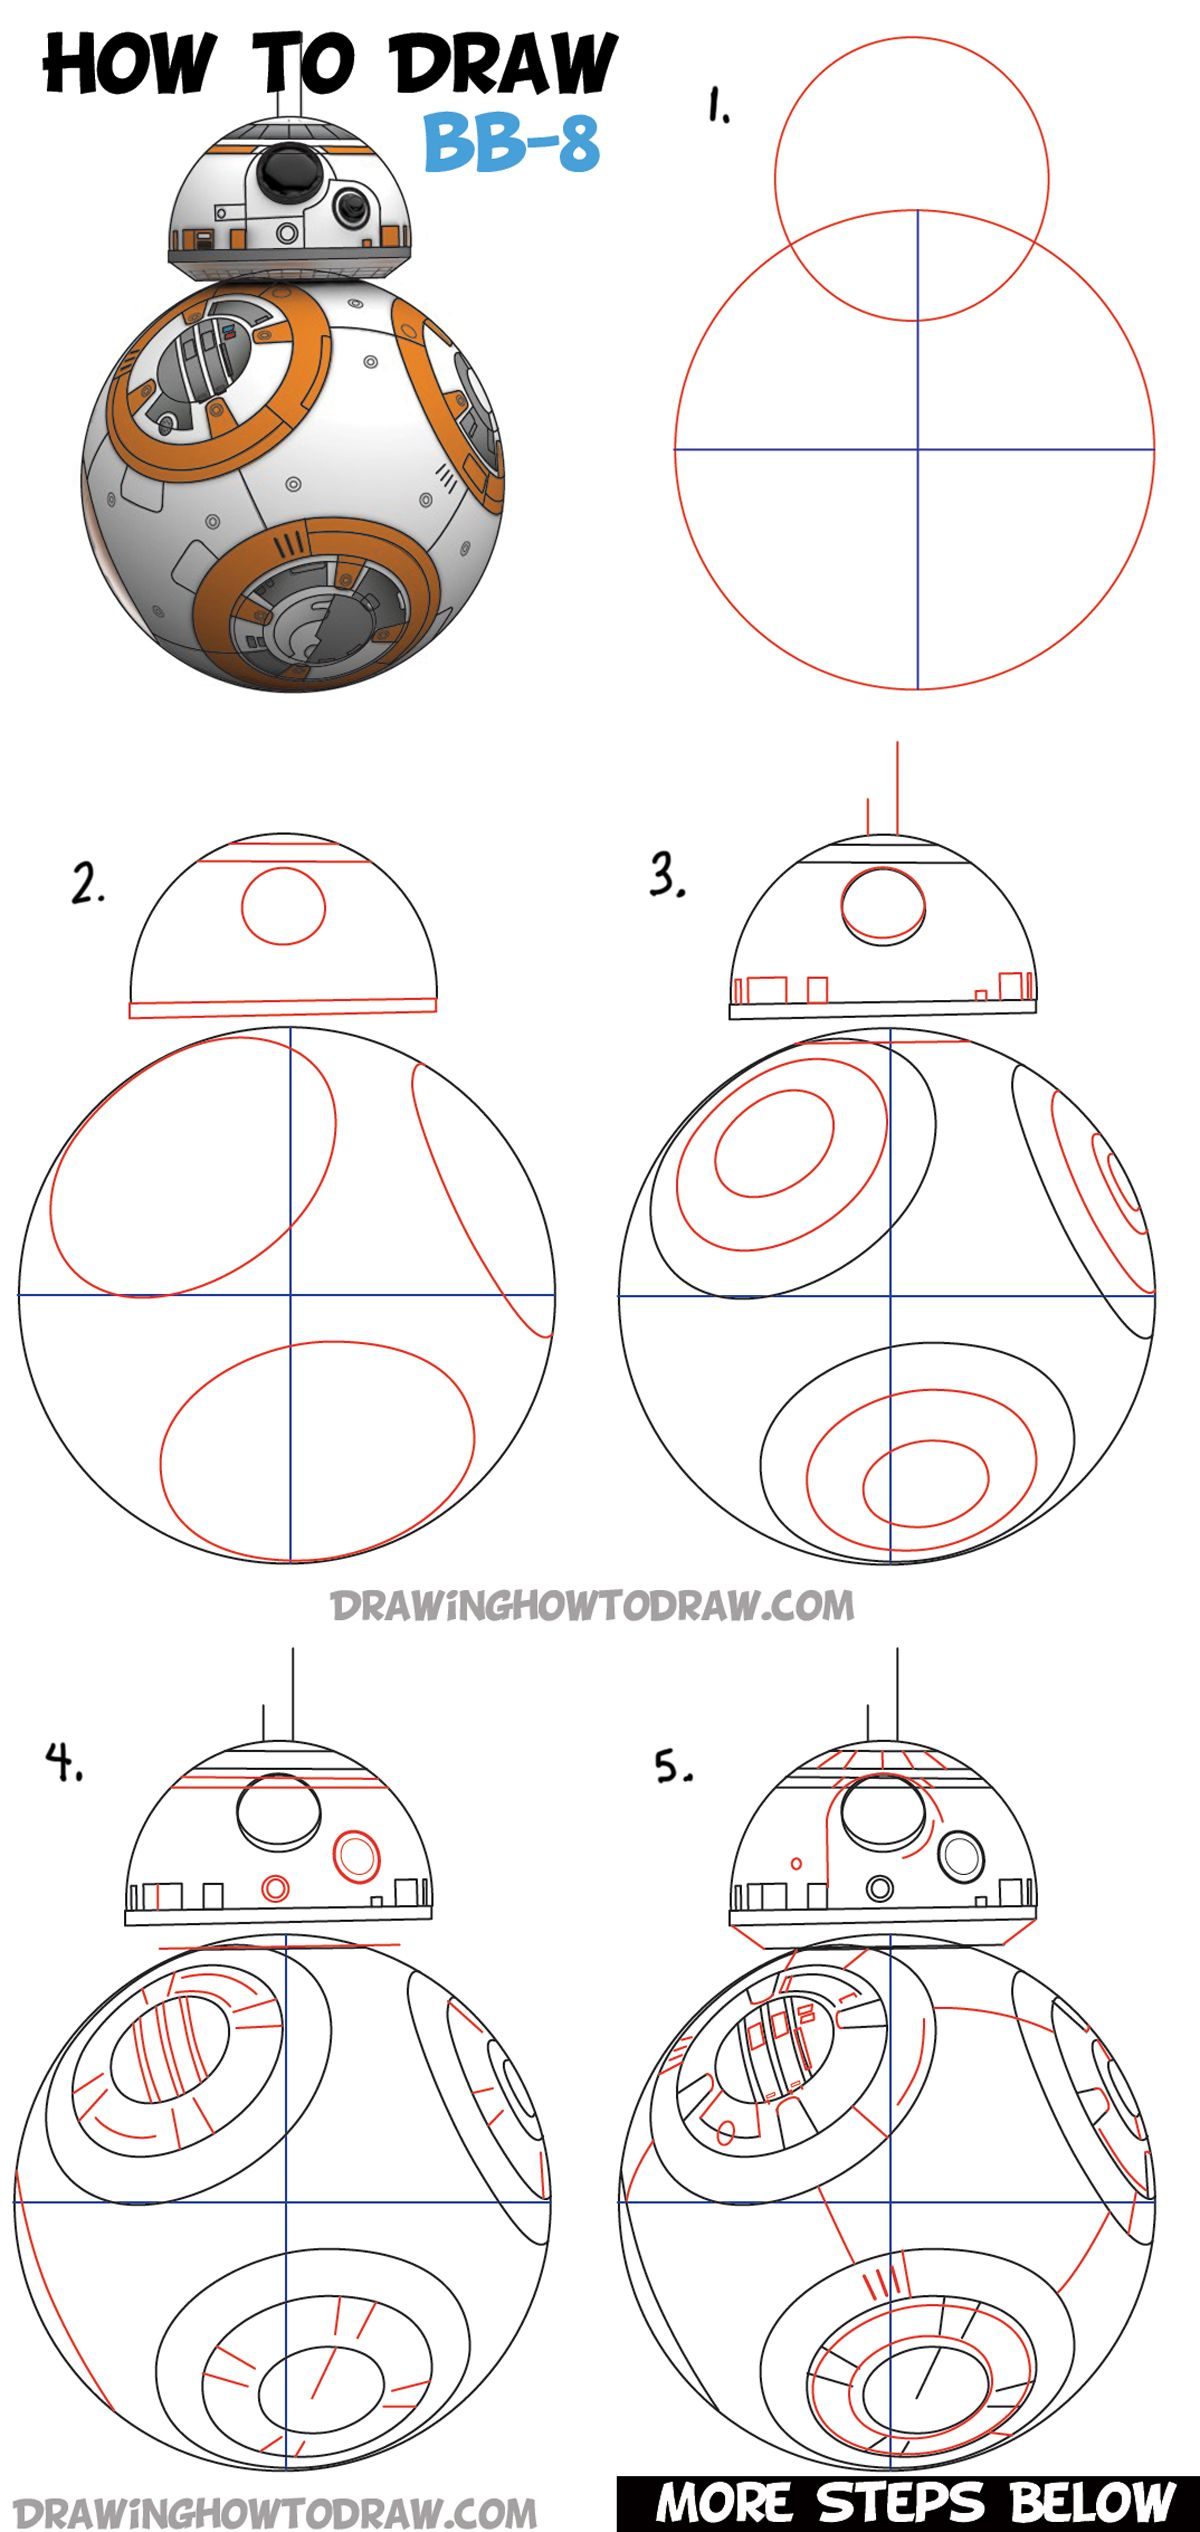 For More Photos Diagrams And Tutorials Of His Cool Origami Star War How To Draw Bb 8 Beeby Ate Droid From Wars Drawing Tutorial The Ball Step By Lesson